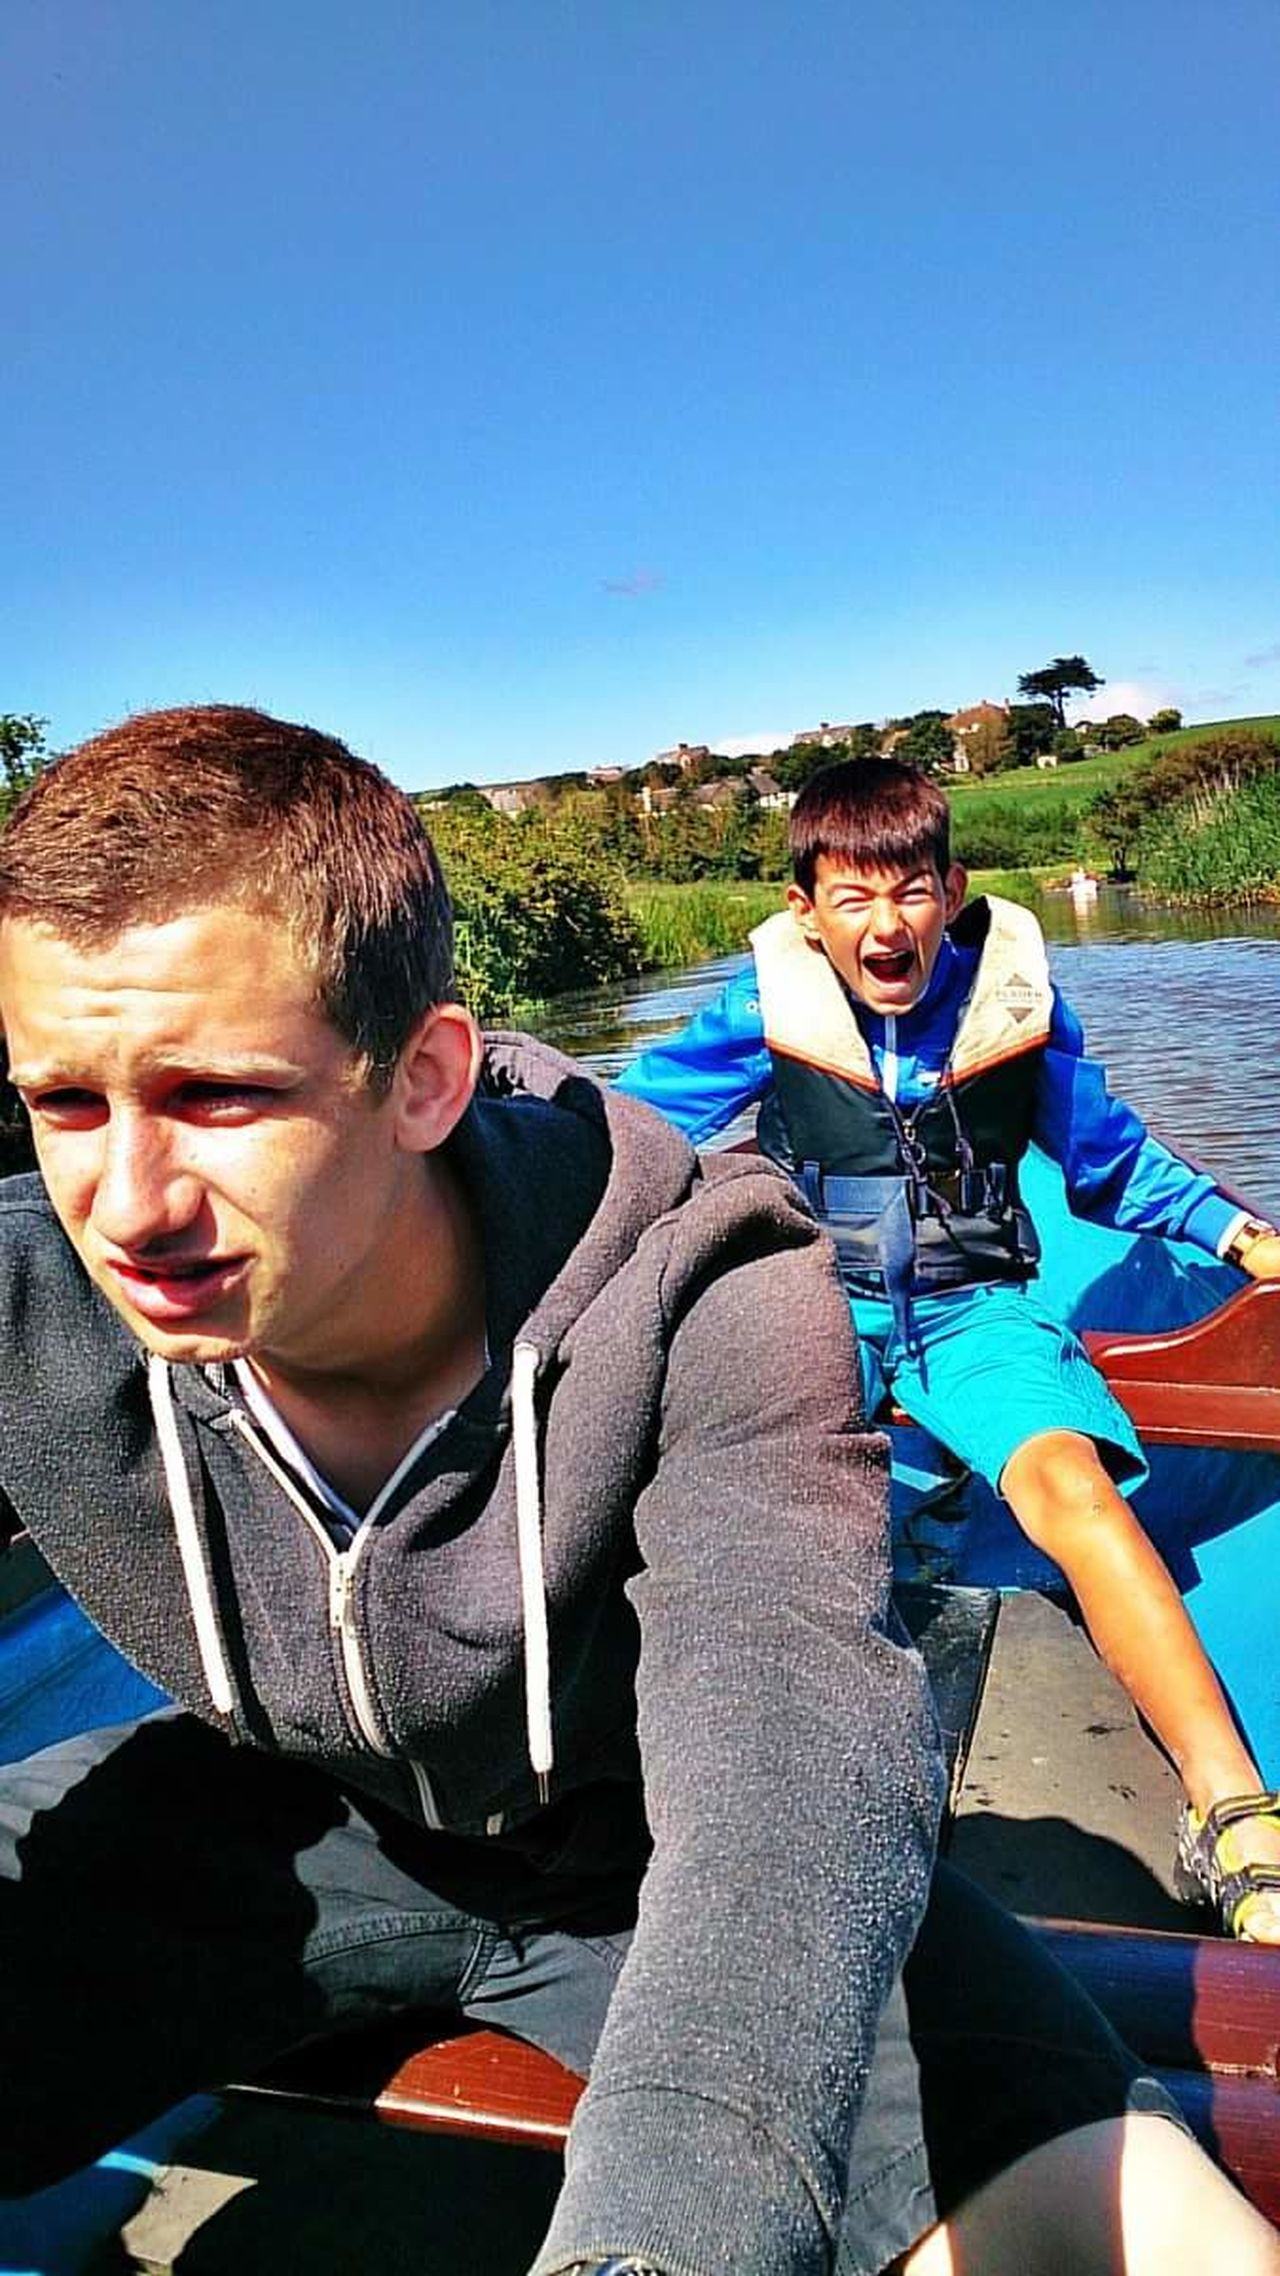 Young Adult Togetherness Two People Clear Sky Outdoors Leisure Activity Friendship Water Day Summer Sunlight Rowingboat Fun! Laughing Out Loud Children